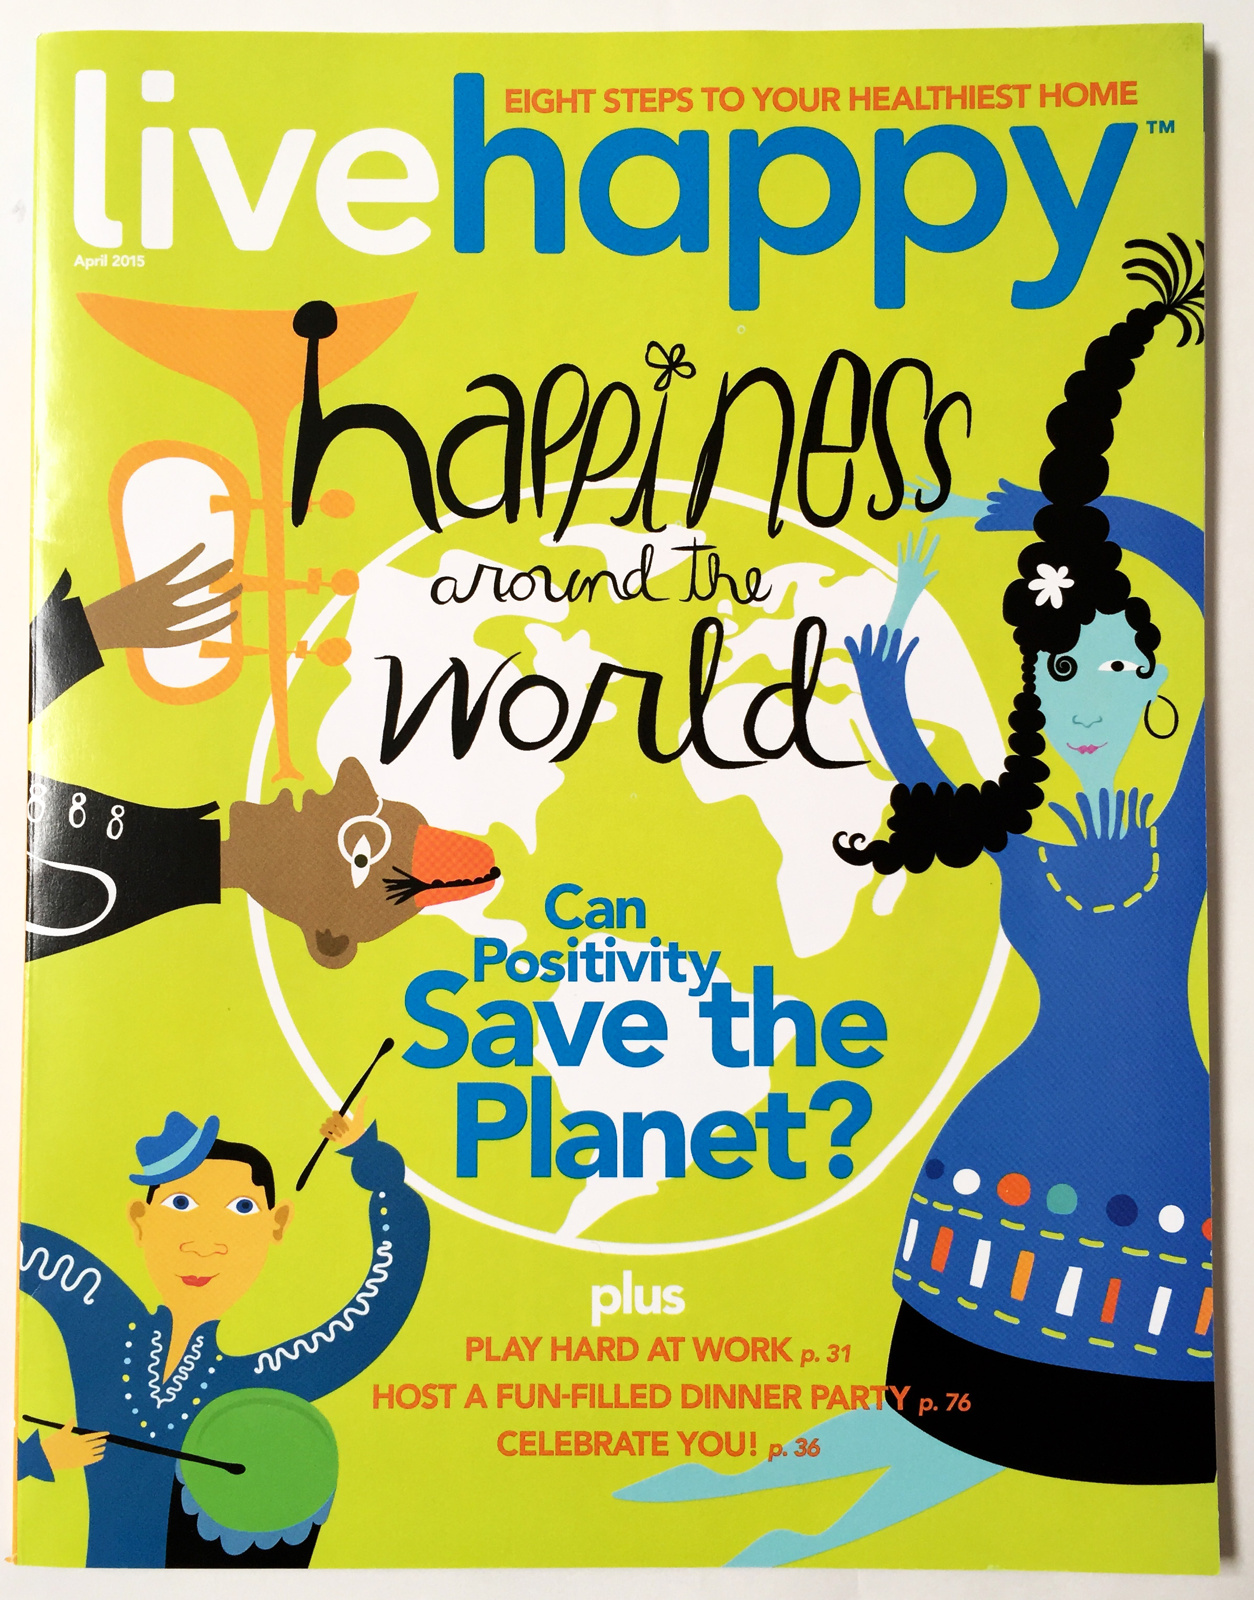 New April 2015 cover